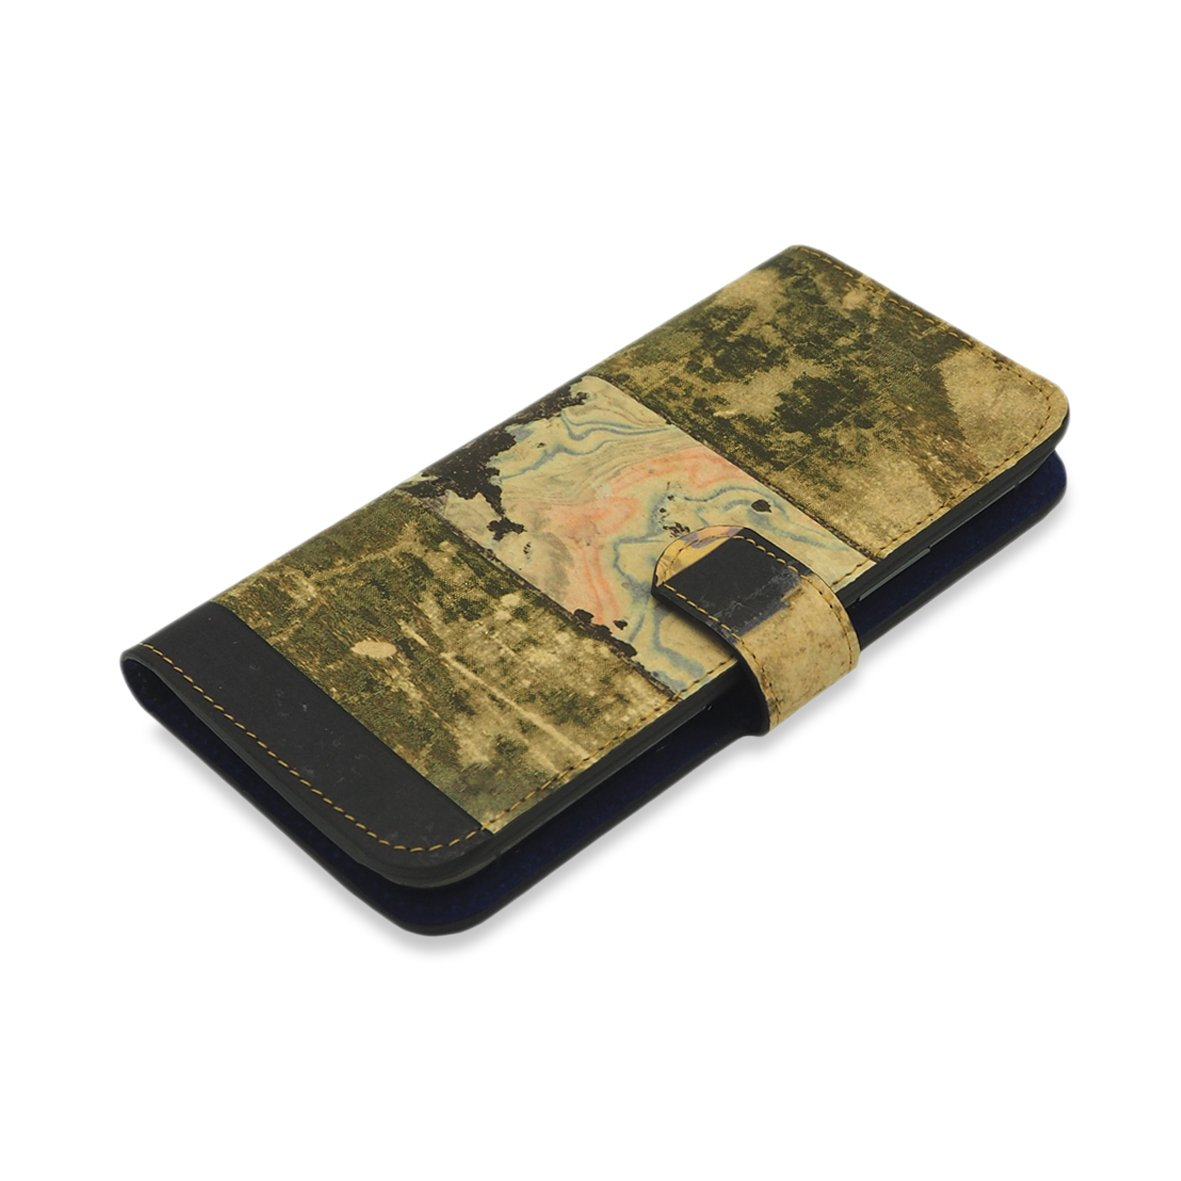 Leather Wallet Folio Phone Case - Restoration Phone case Tovi Sorga ‌iPhone 12‌ Pro Max No personalisation Green